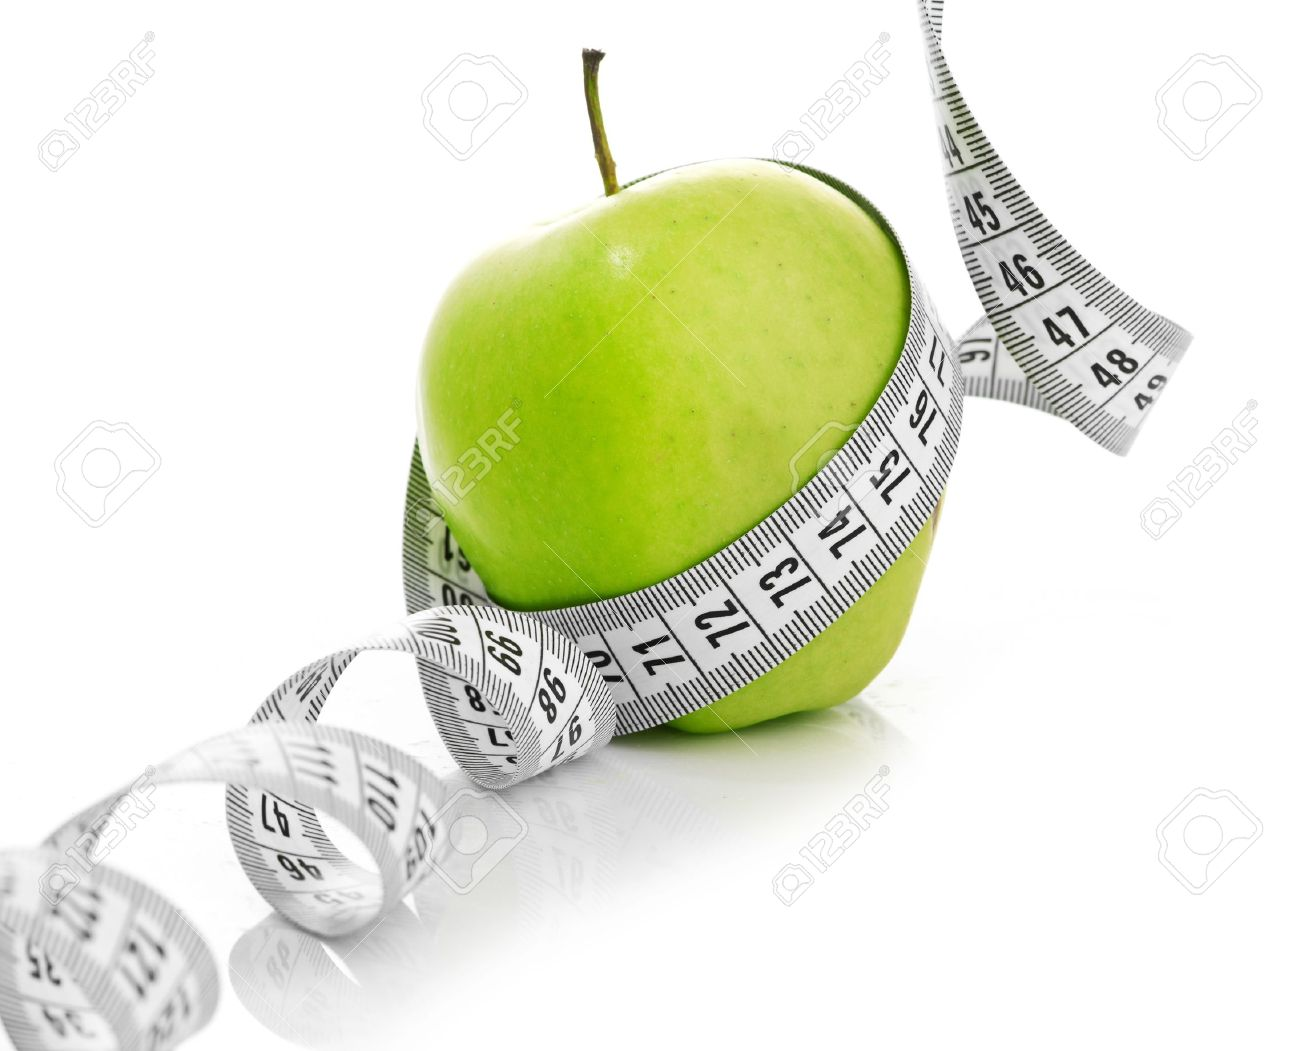 Measuring Tape Wrapped Around A Green Apple As A Symbol Of Diet